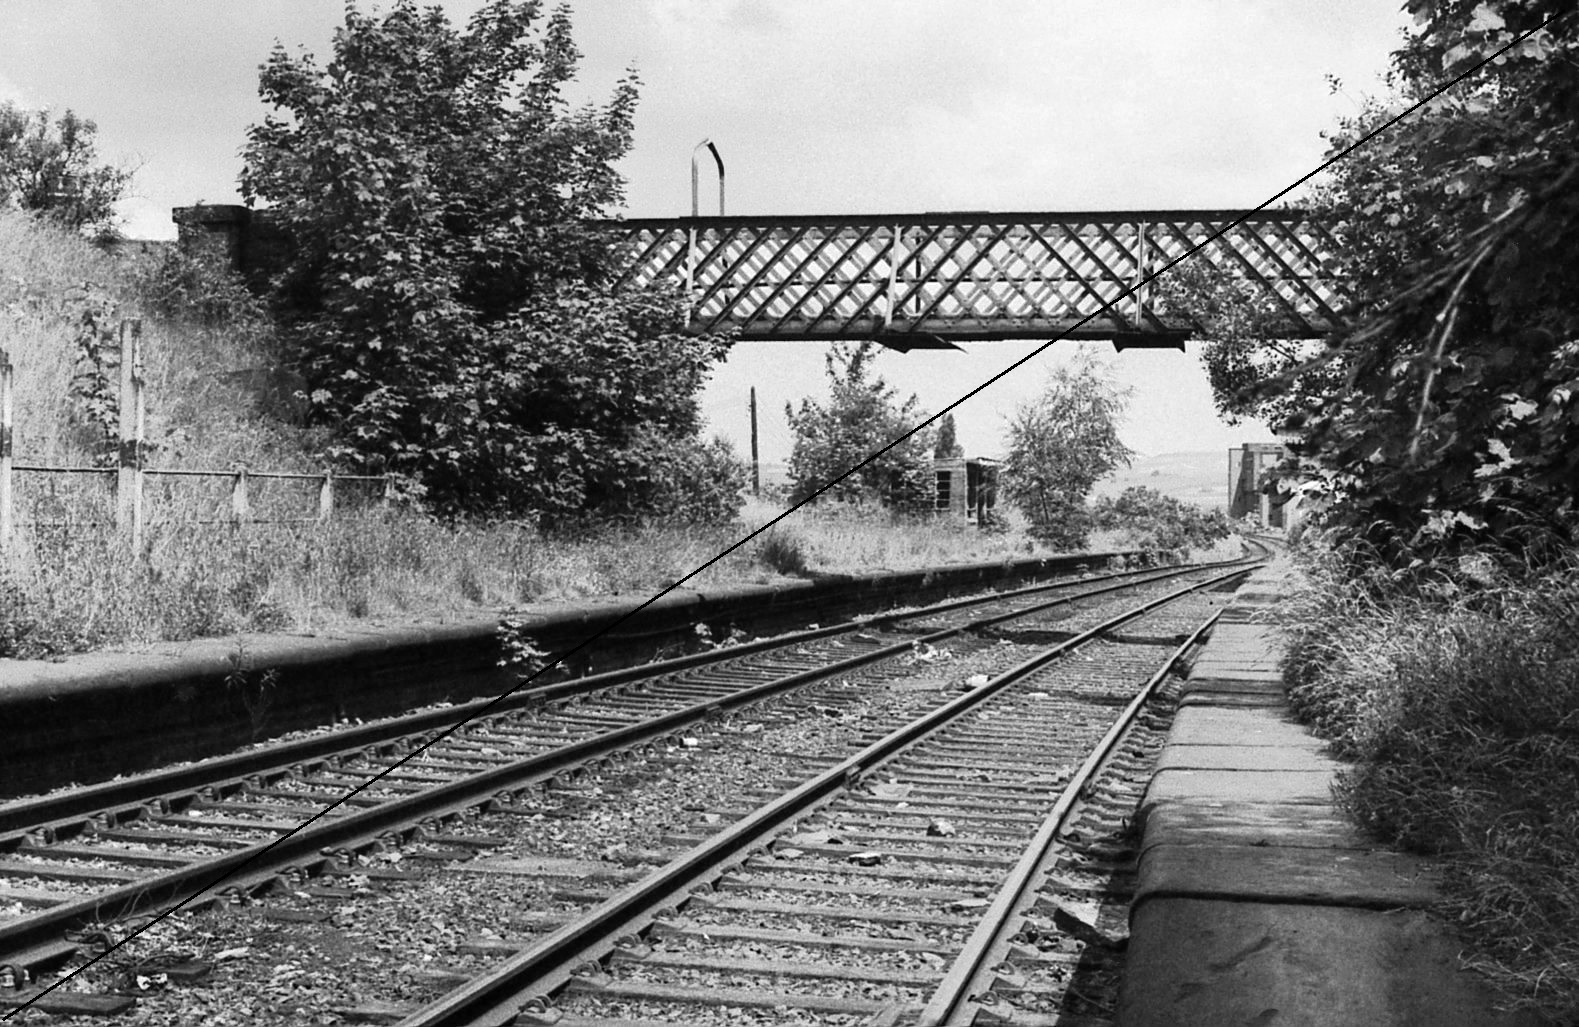 GCR006-Killamarsh Central Station-Looking North-16-06-1977.jpg